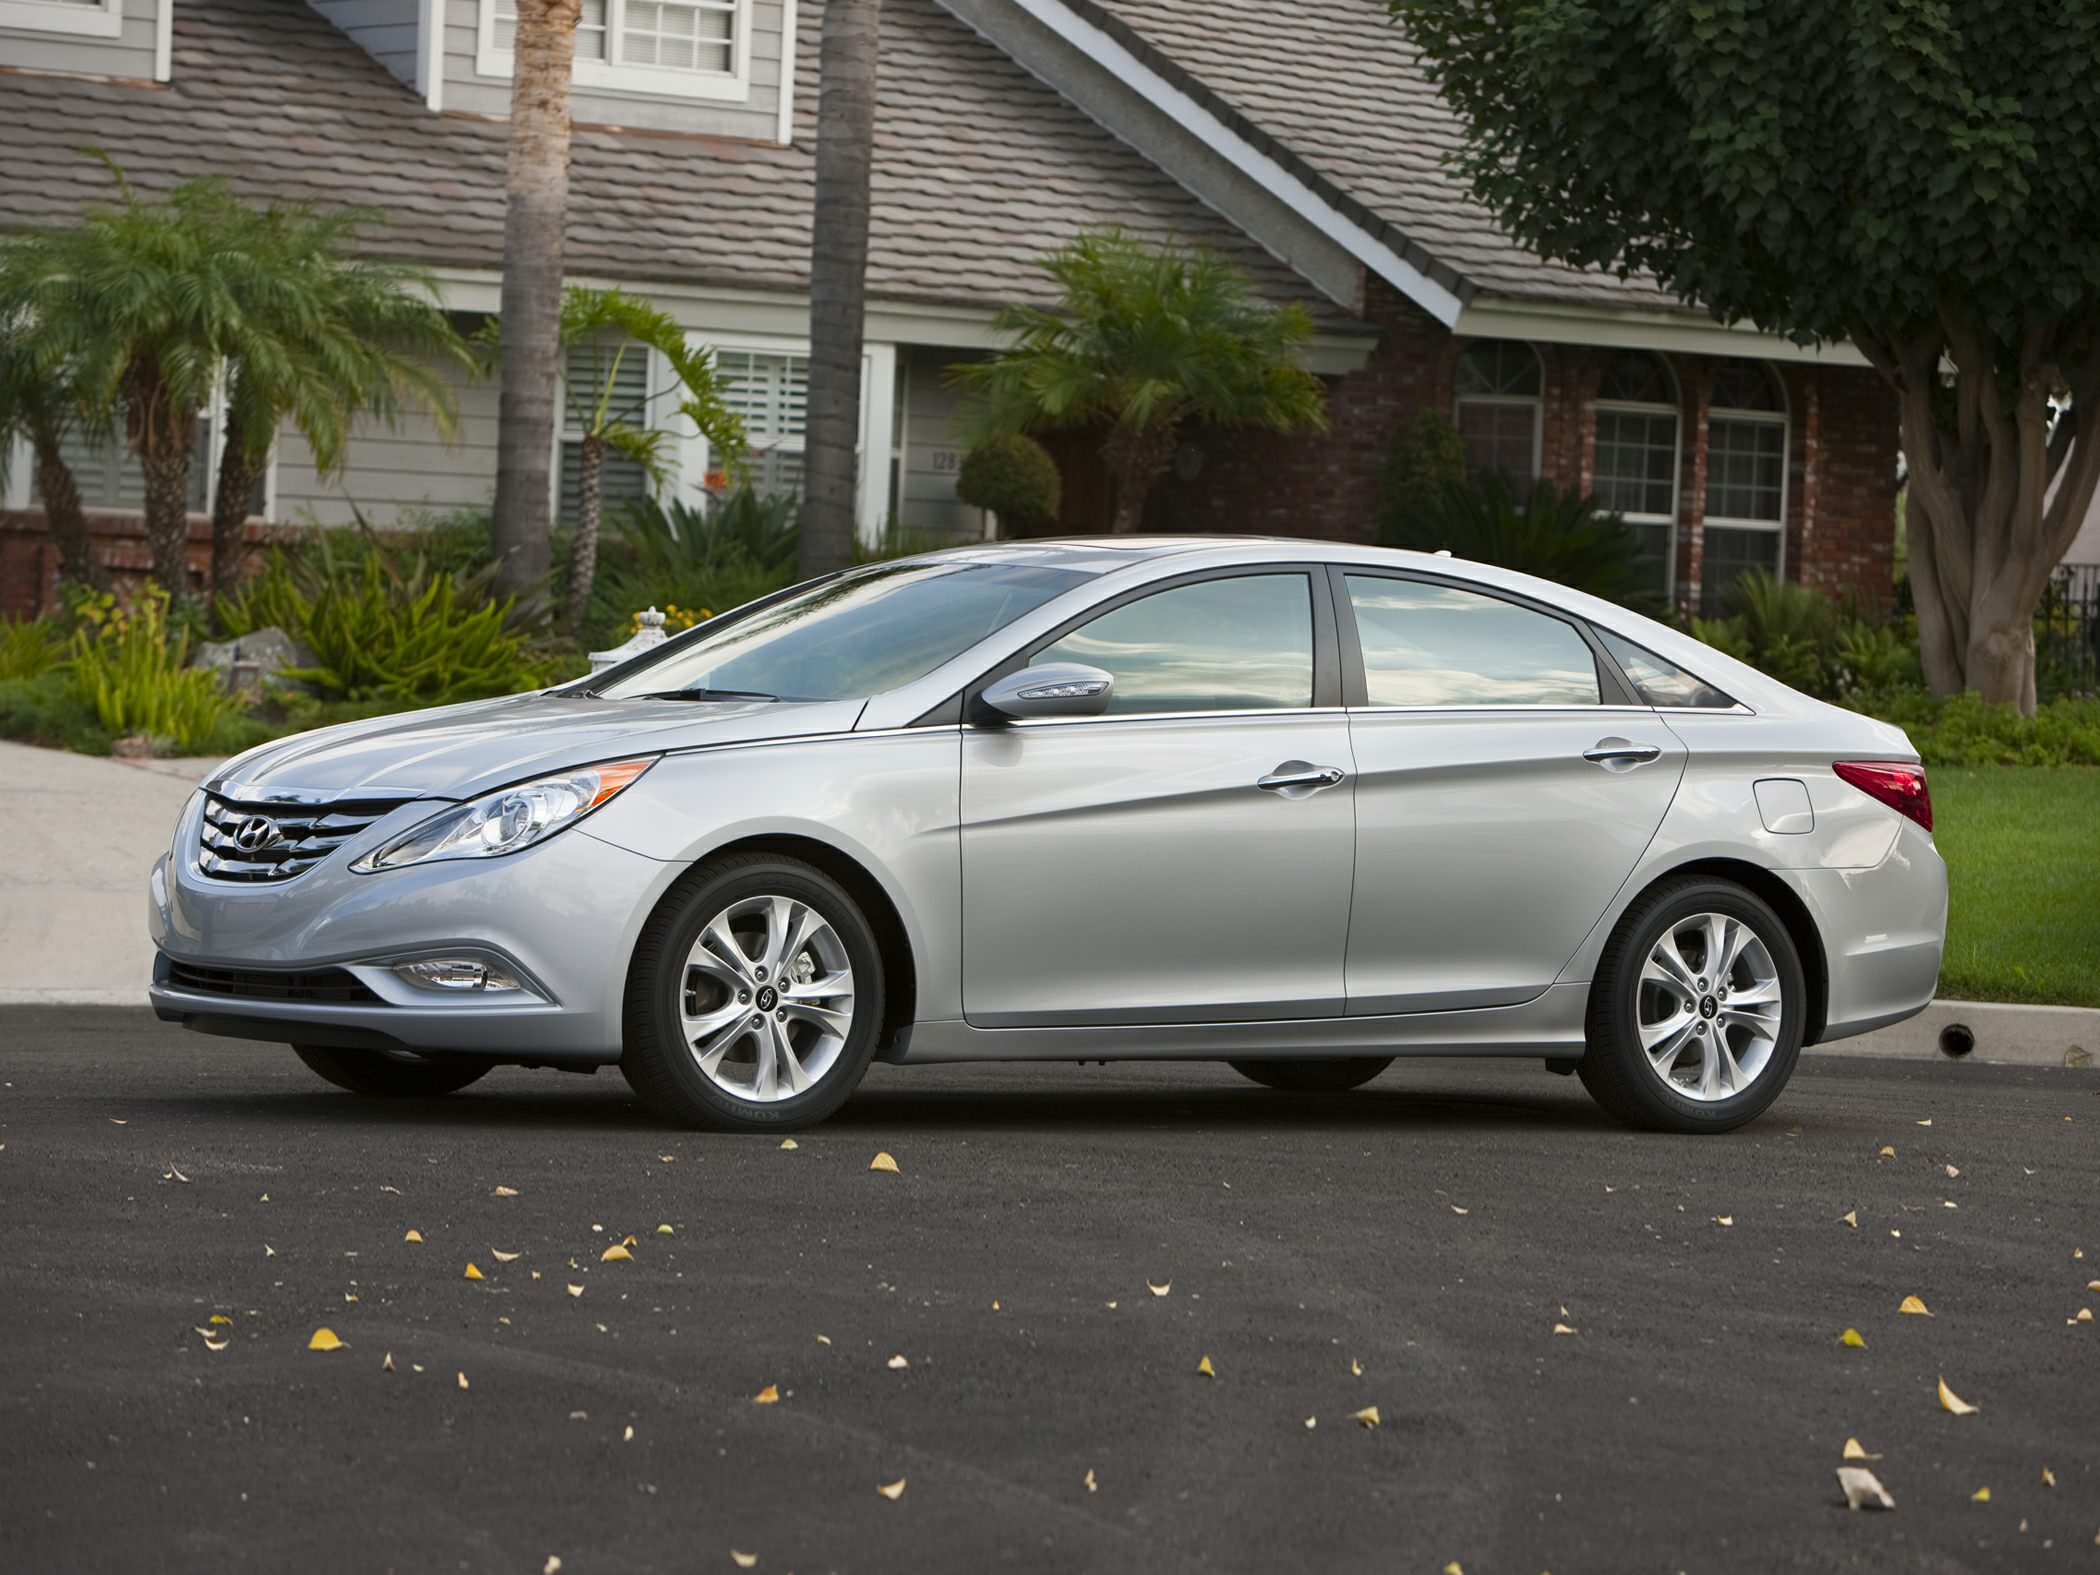 2013 Hyundai Sonata Limited 17 x 65J Aluminum Alloy WheelsHeated Front Bucket SeatsLeather Seati